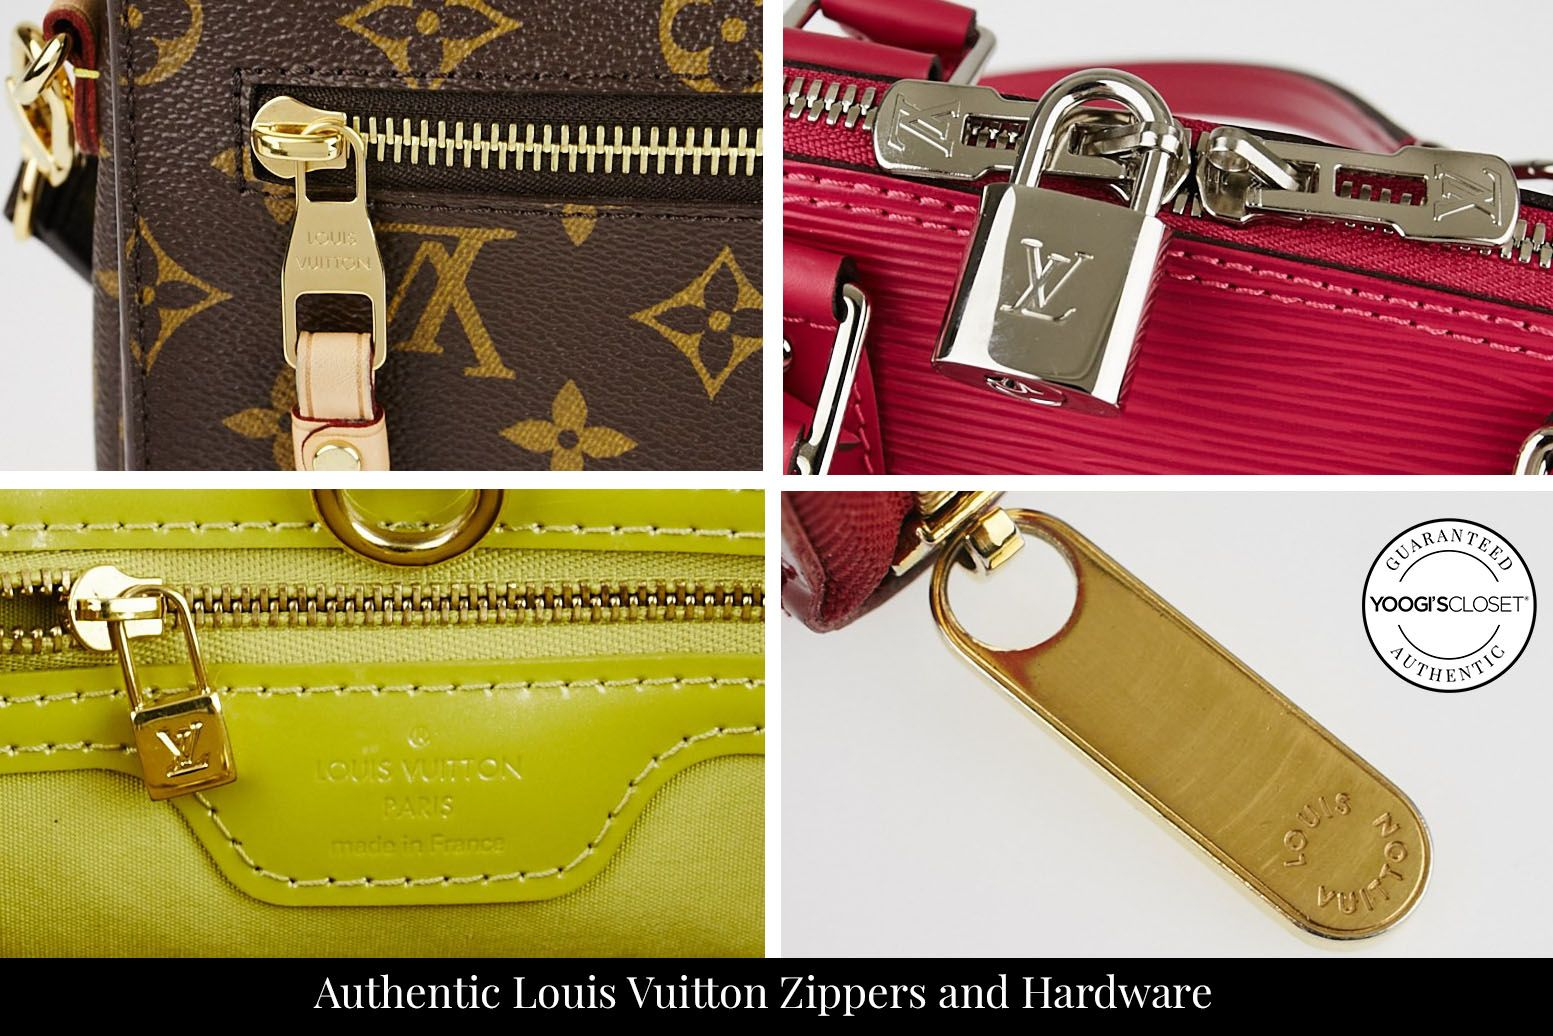 Are Louis Vuitton Bags Made In Usa Yoogis Closet Blog >> Top 10 Tips For Authenticating Louis Vuitton Louis Vuitton